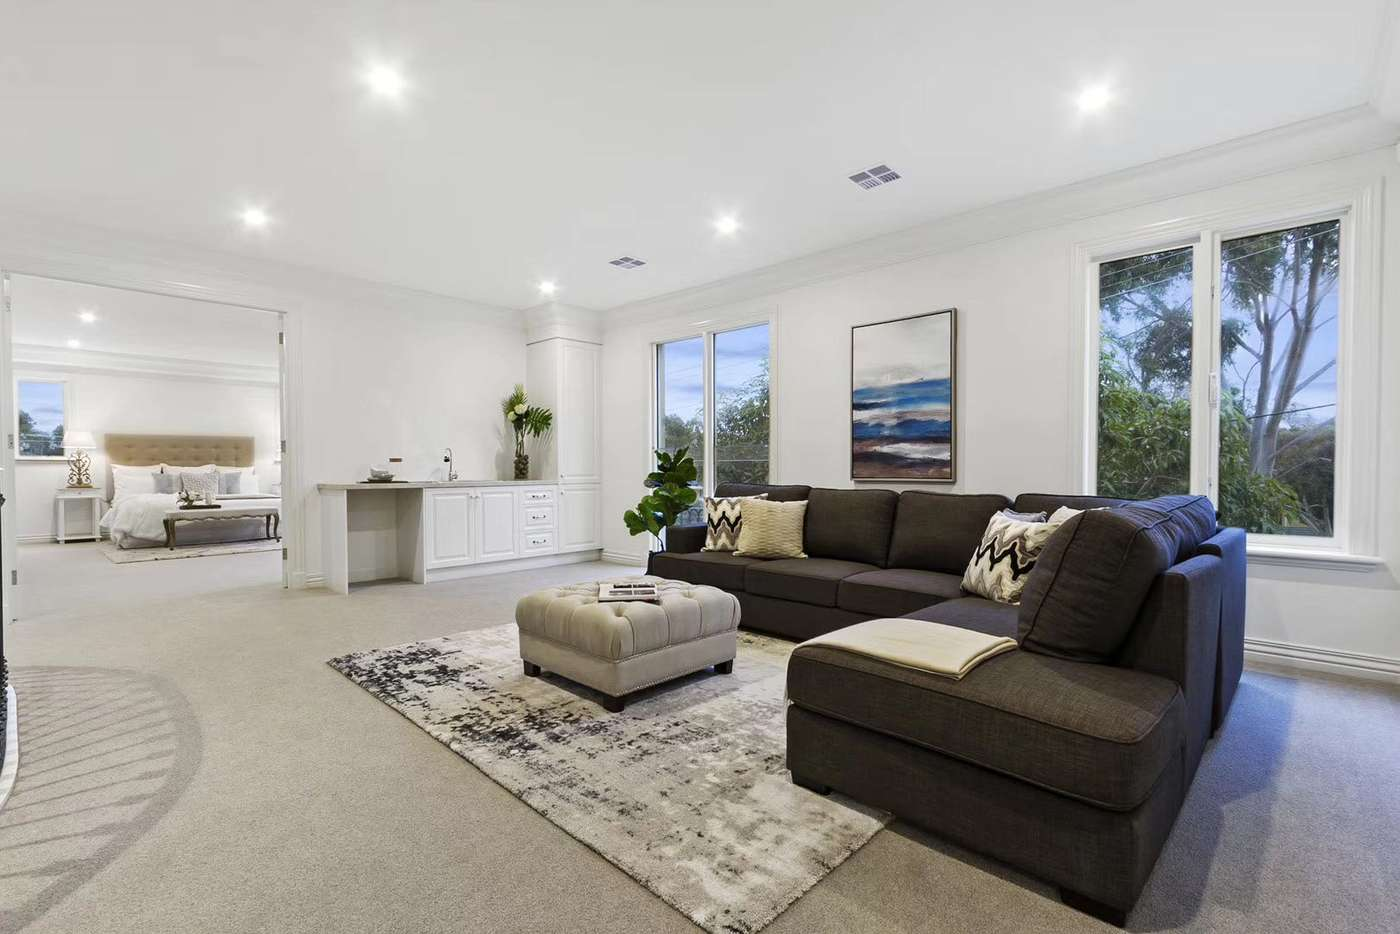 Sixth view of Homely house listing, 13 Henderson Court, Glen Waverley VIC 3150